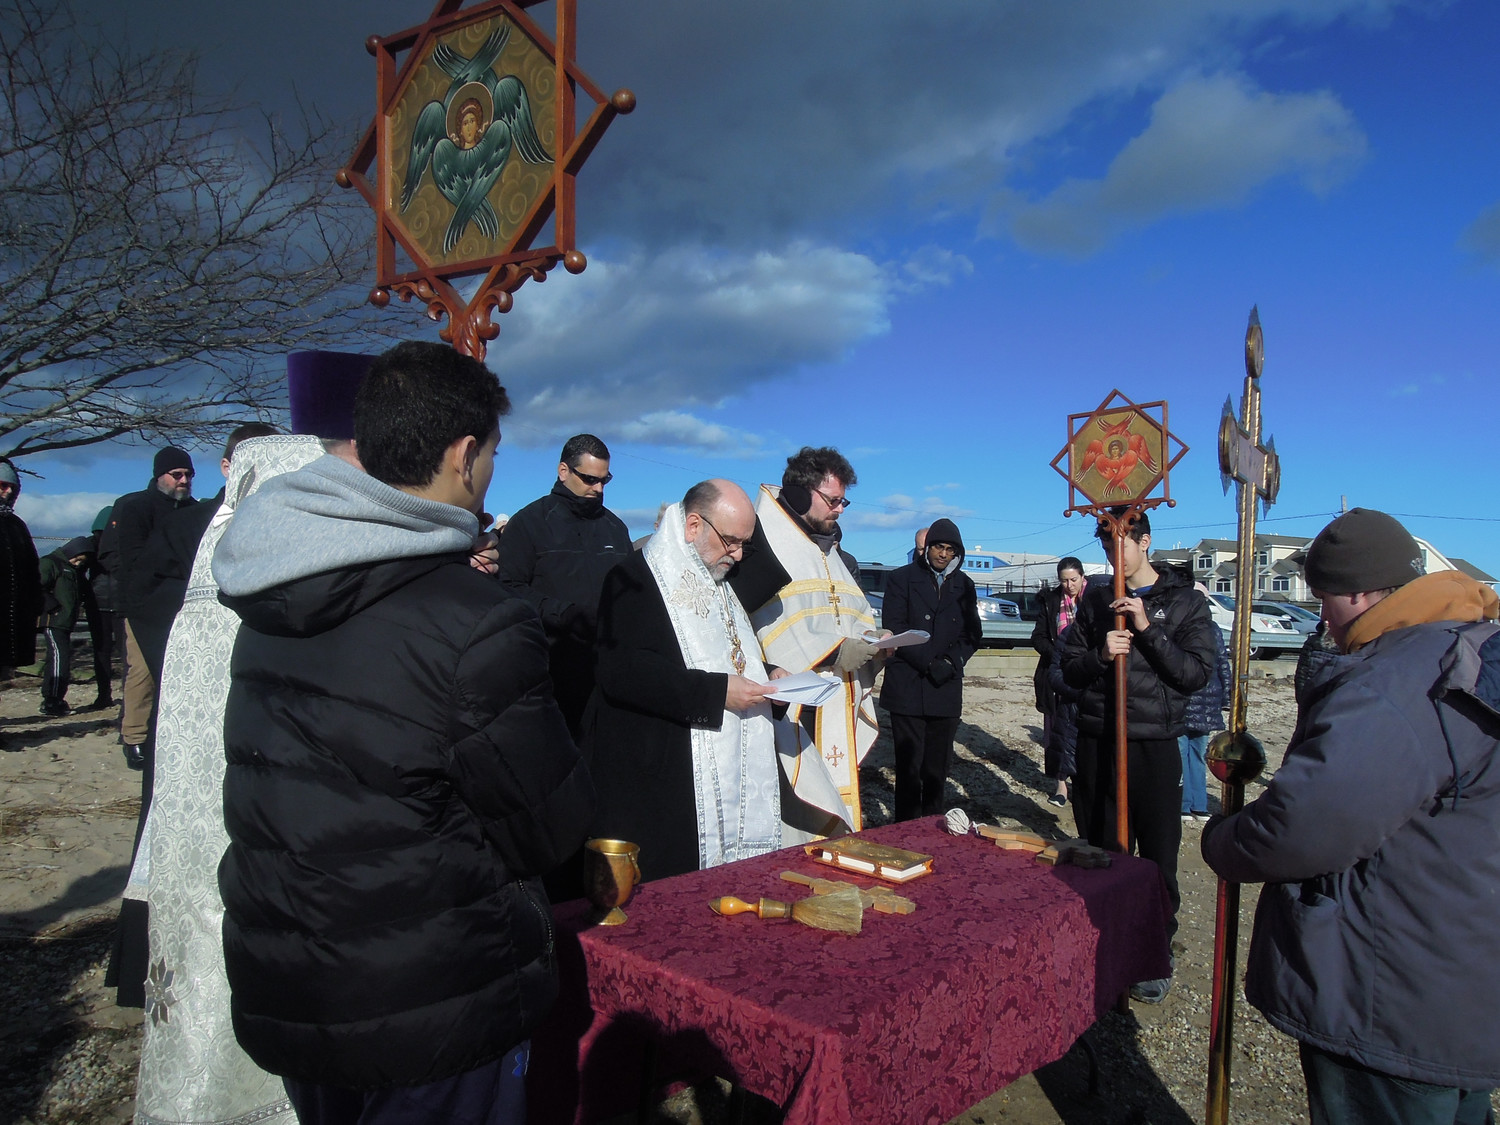 His Eminence Archbishop Michael Dahulich, center, of the Orthodox Church in America's Diocese of New York and New Jersey officiated at Seaford's Great South Bay on Jan. 6. He was assisted by Rev. Martin Kraus, right, of Holy Trinity Orthodox Church in East Meadow.